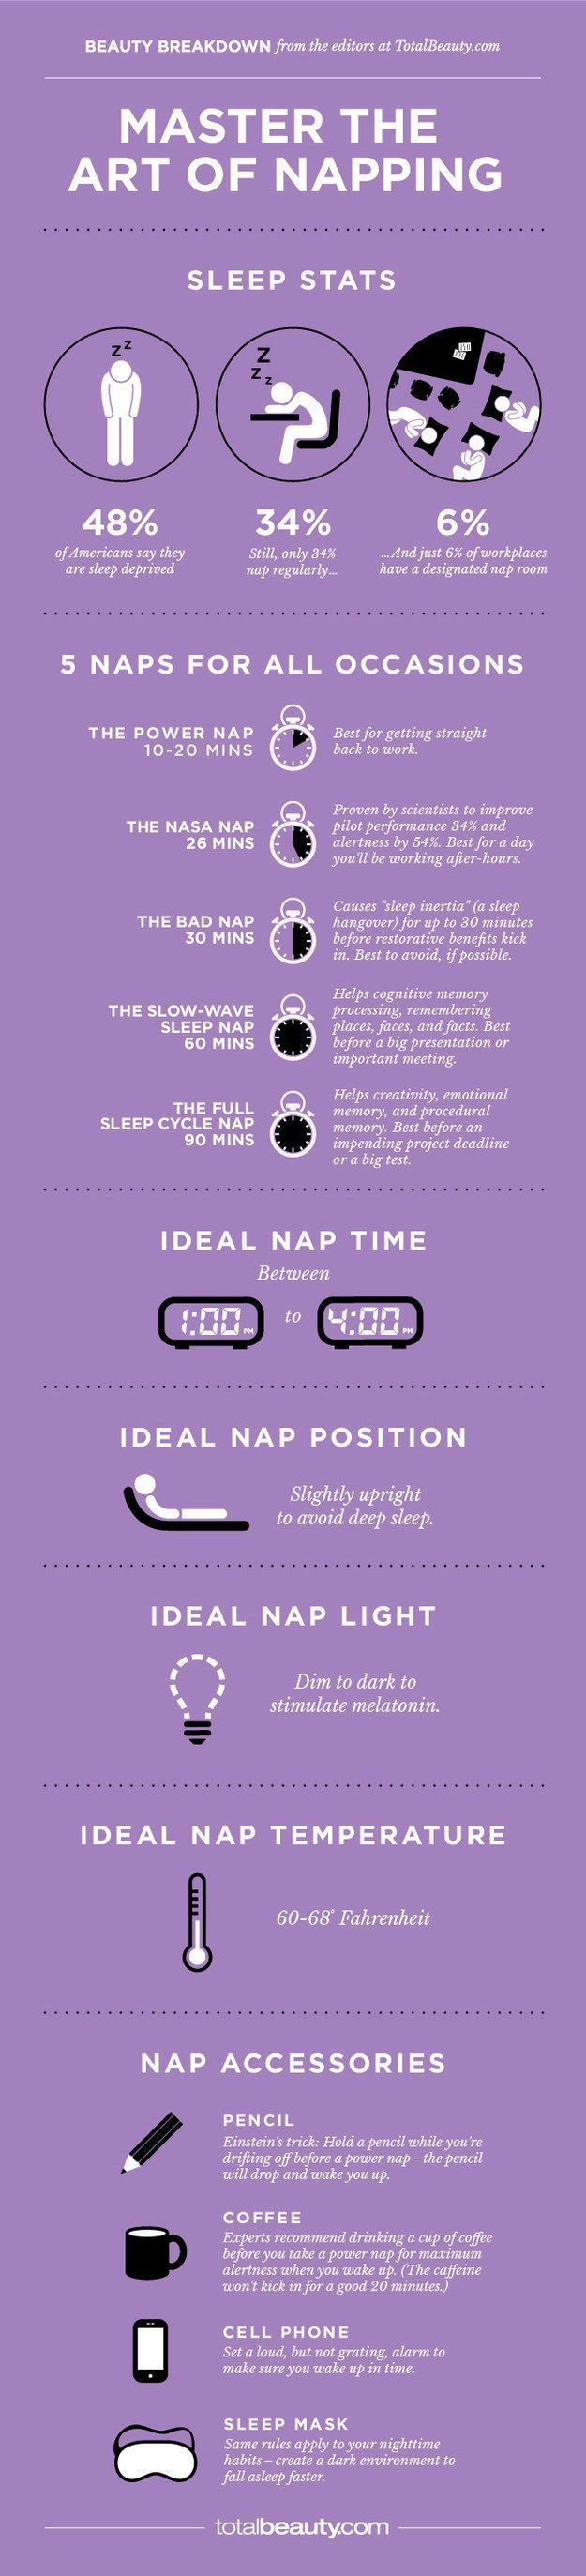 Master the art of napping...